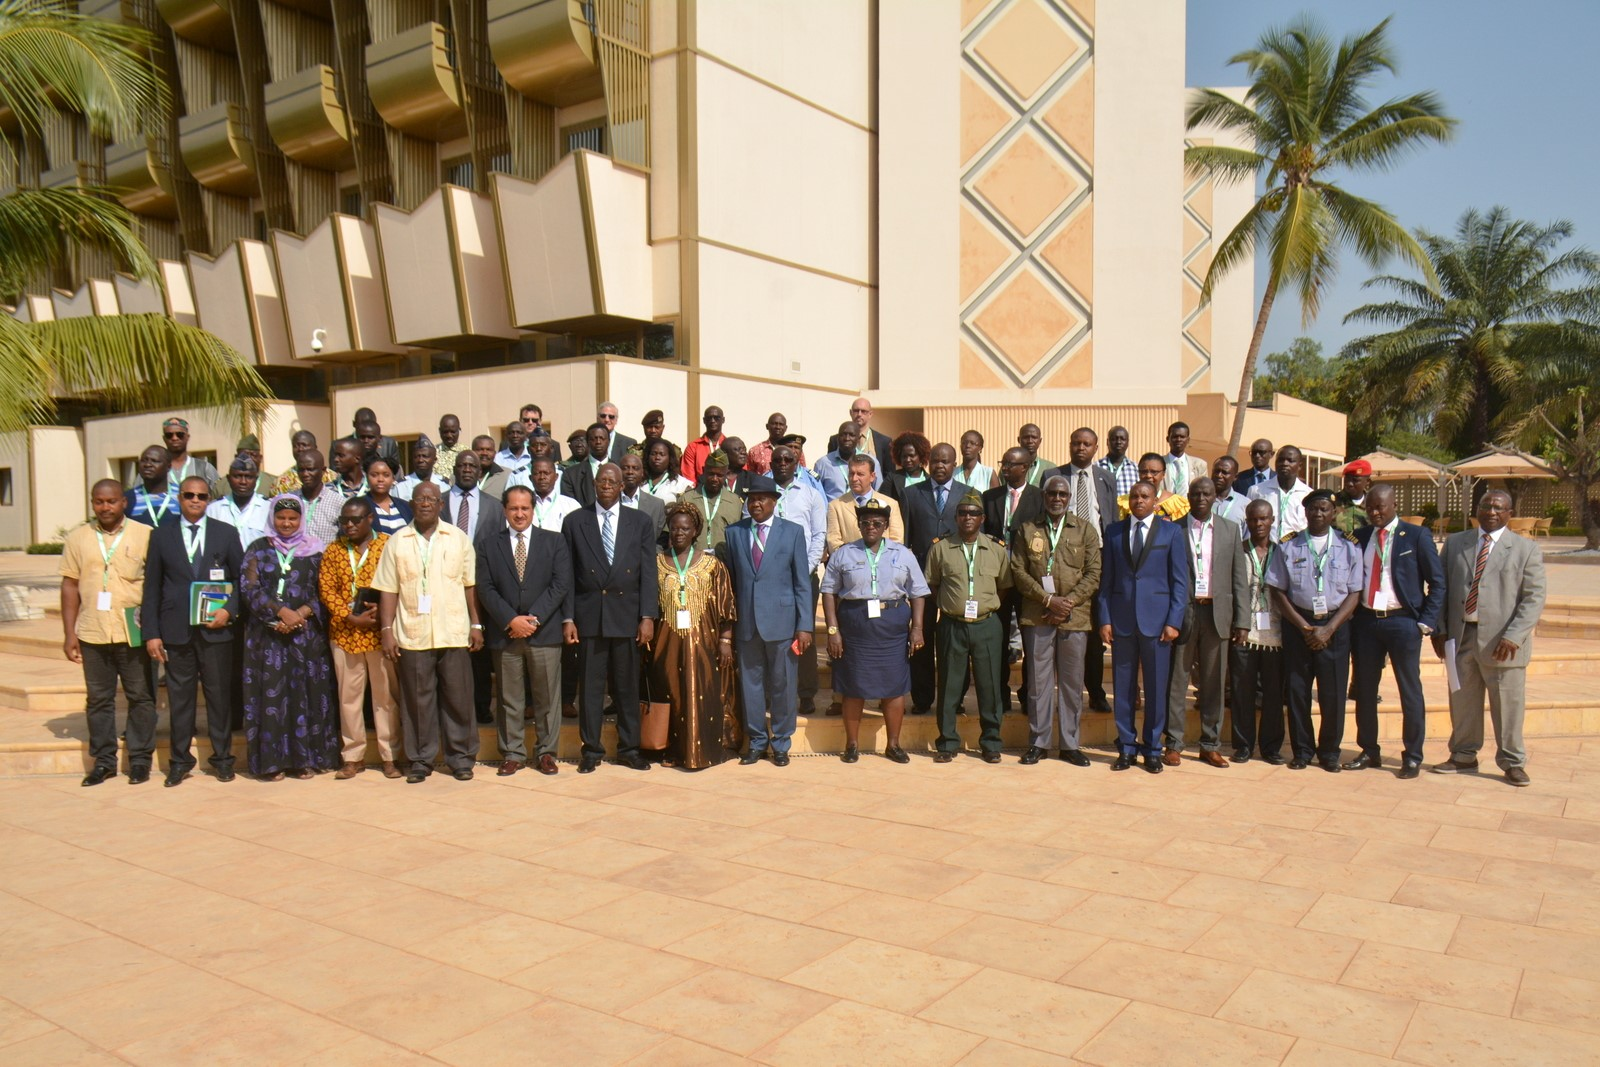 The Guinea Bissau Minister of National Defense and National Liberation Ex-combatants, Dr. Eduardo Costa Sanha [7th from left] with AU officials and workshop participants